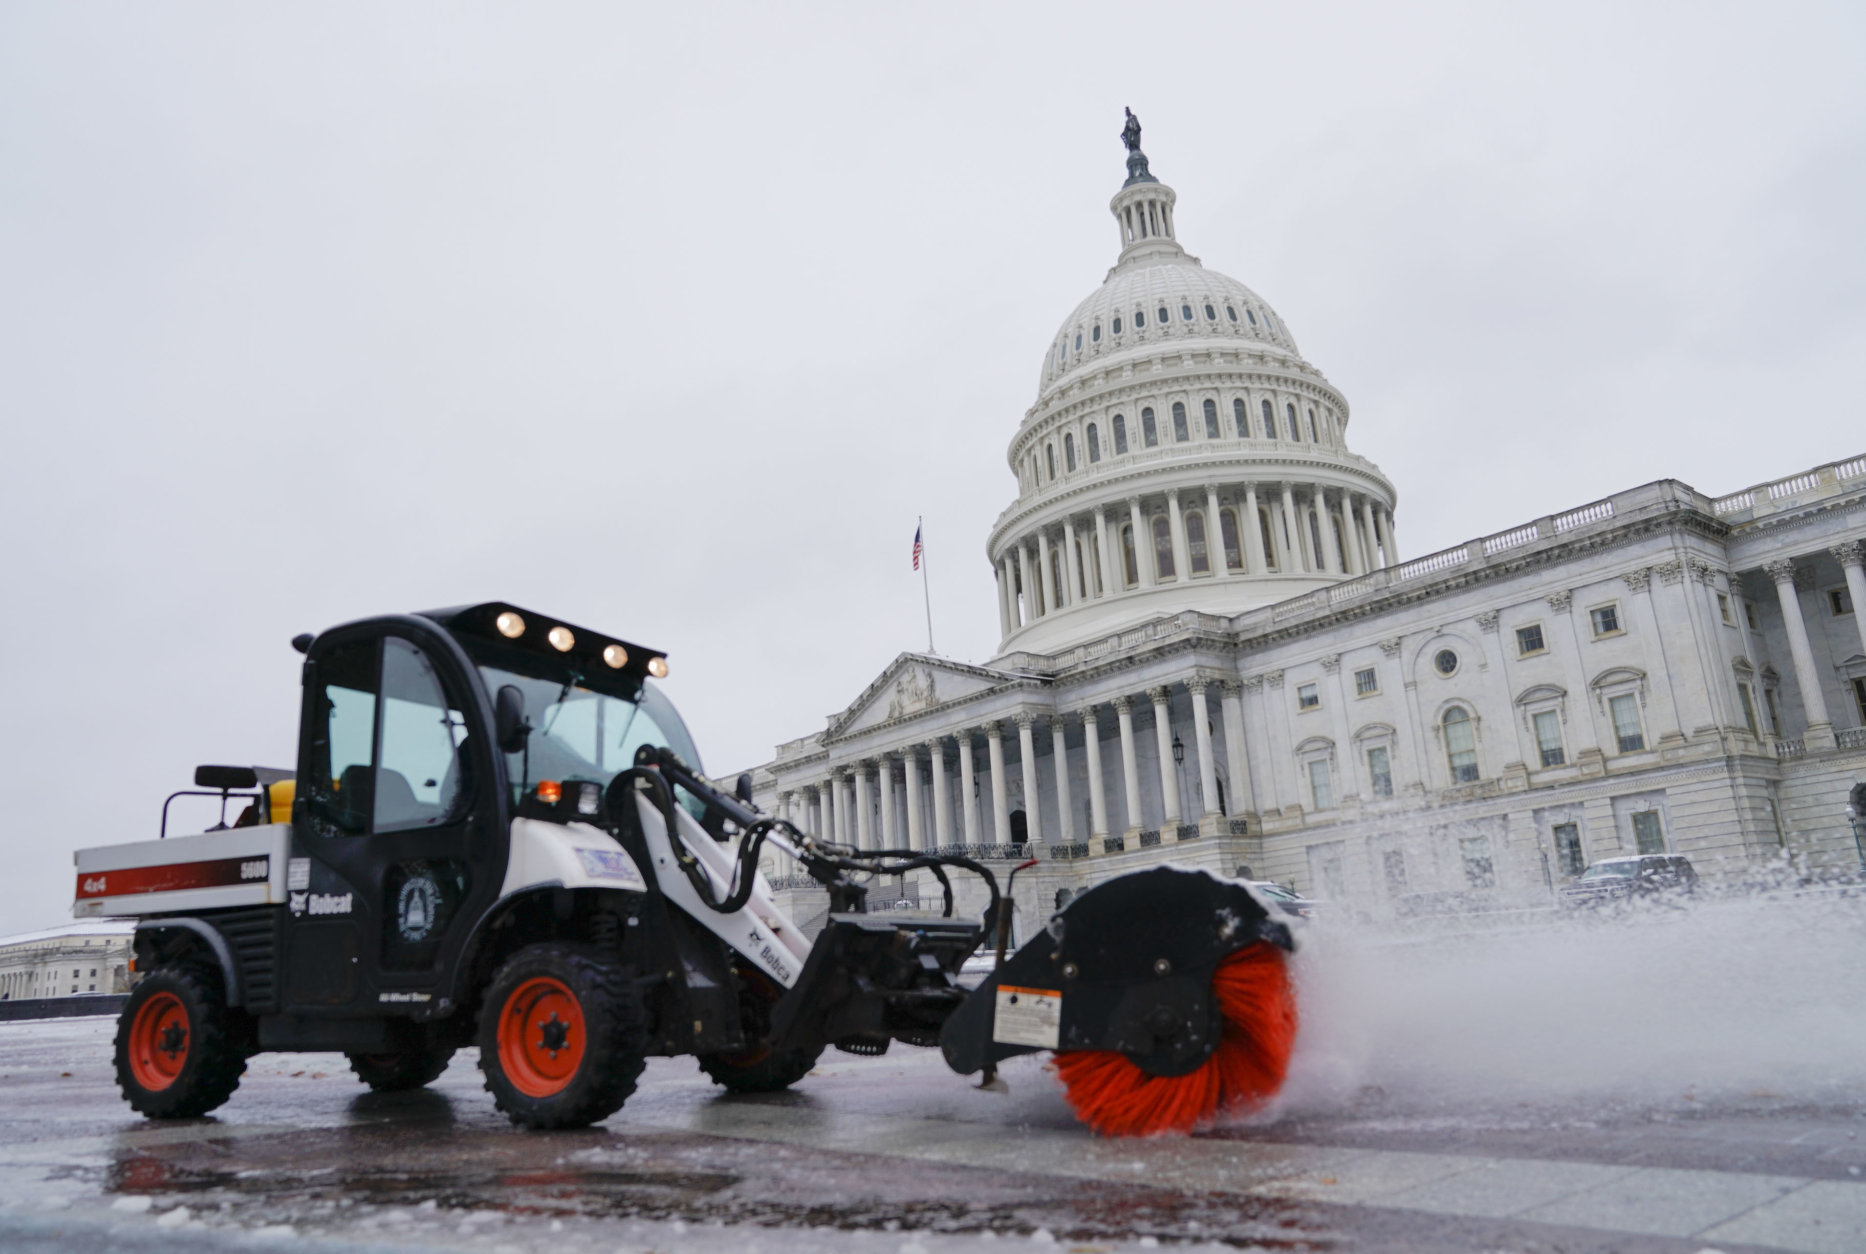 Worker clears the first snow of the season in front of the Capitol in Washington, Thursday, Nov. 15, 2018. (AP Photo/Pablo Martinez Monsivais)